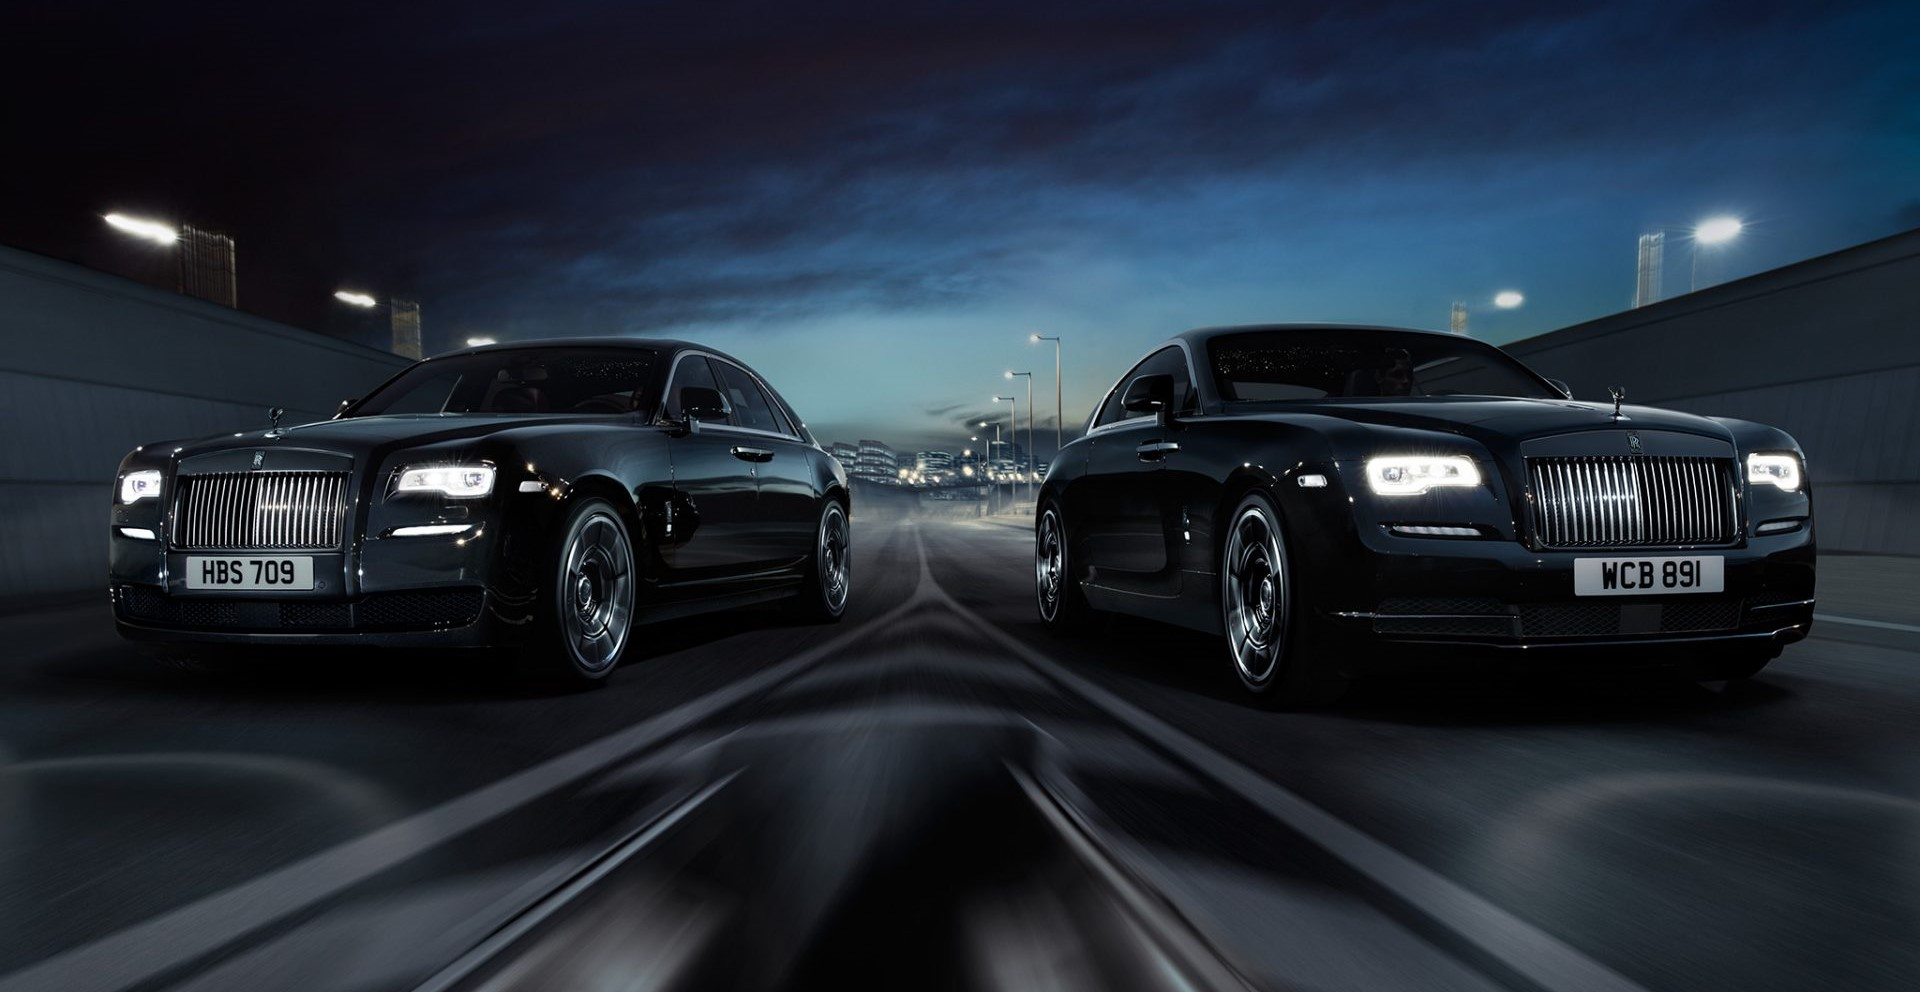 Rolls Royce Creates The Ultimate Ride For a Villain